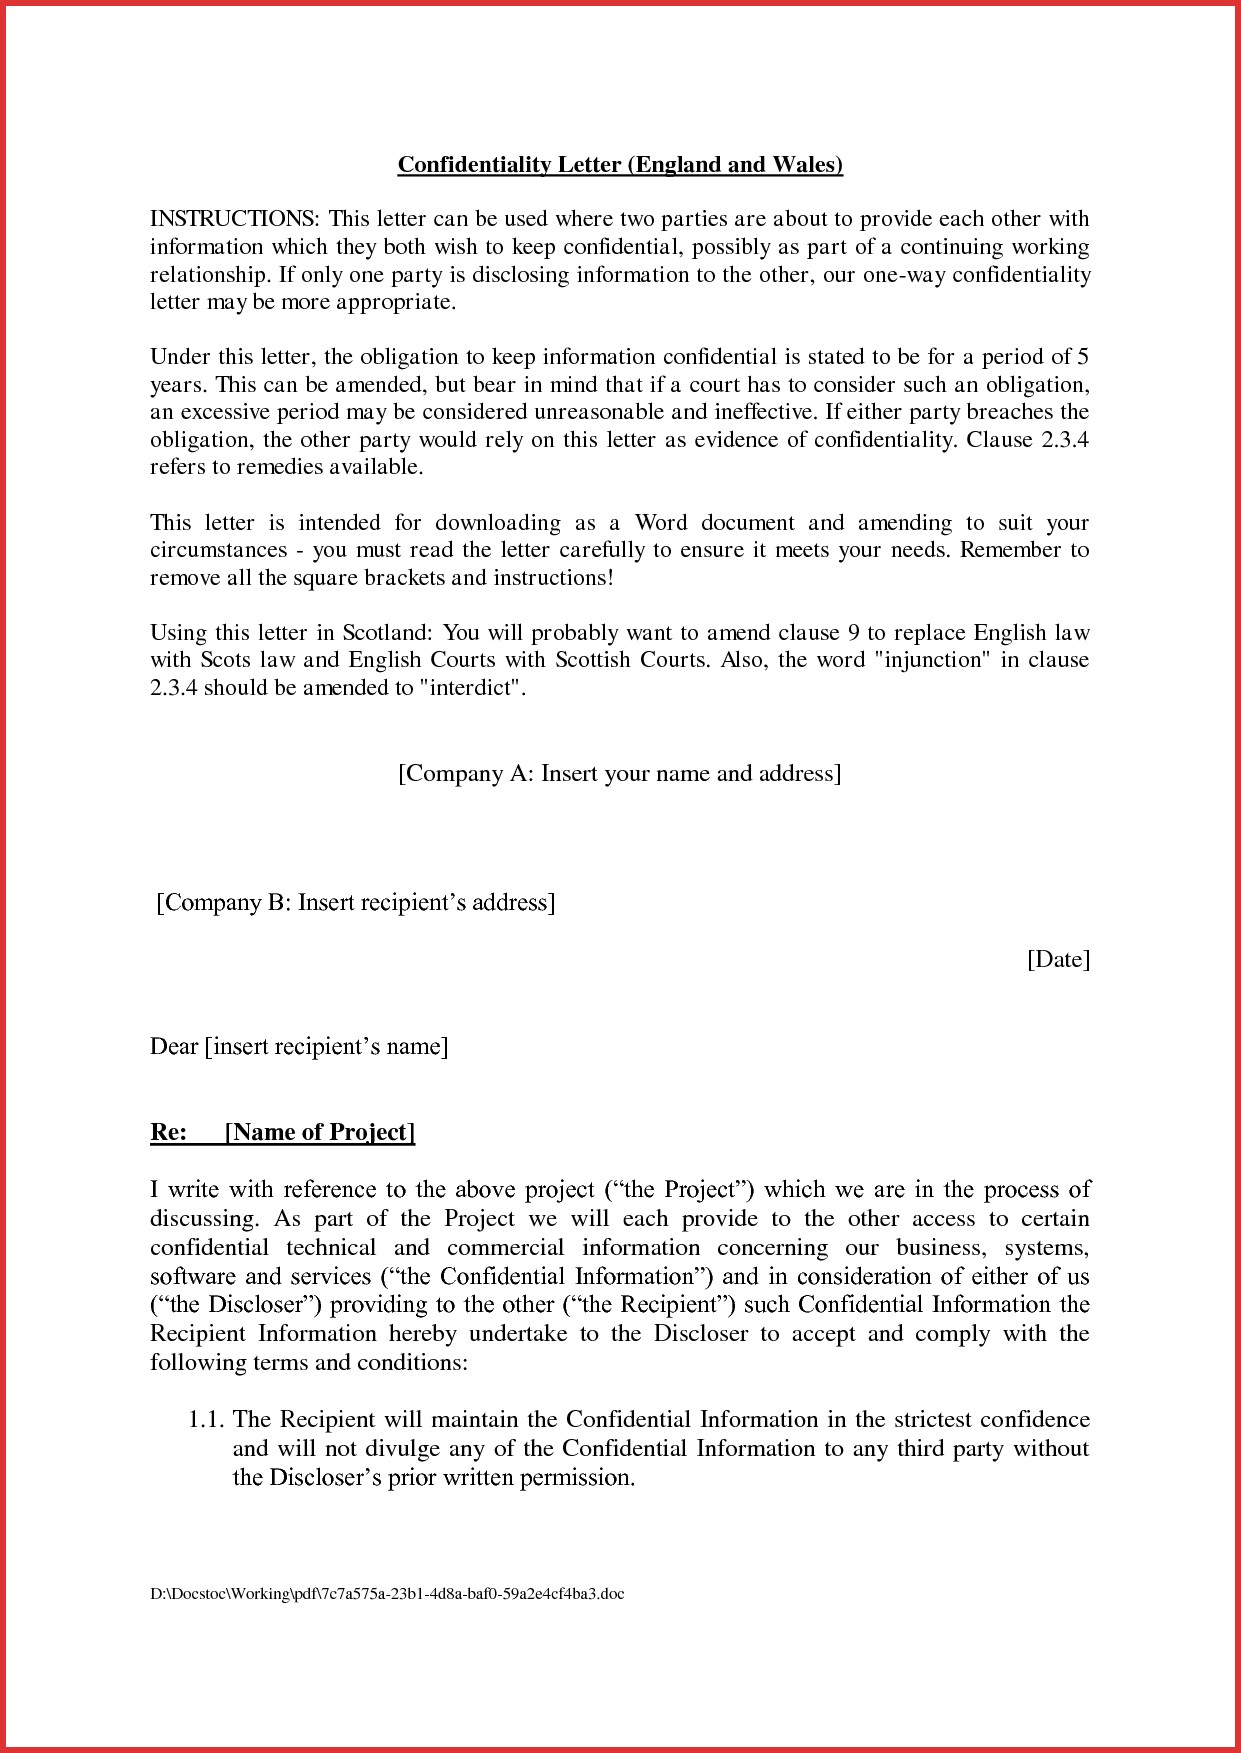 Agreement Letter Between Two Parties For Payment 2 – cool green jobs